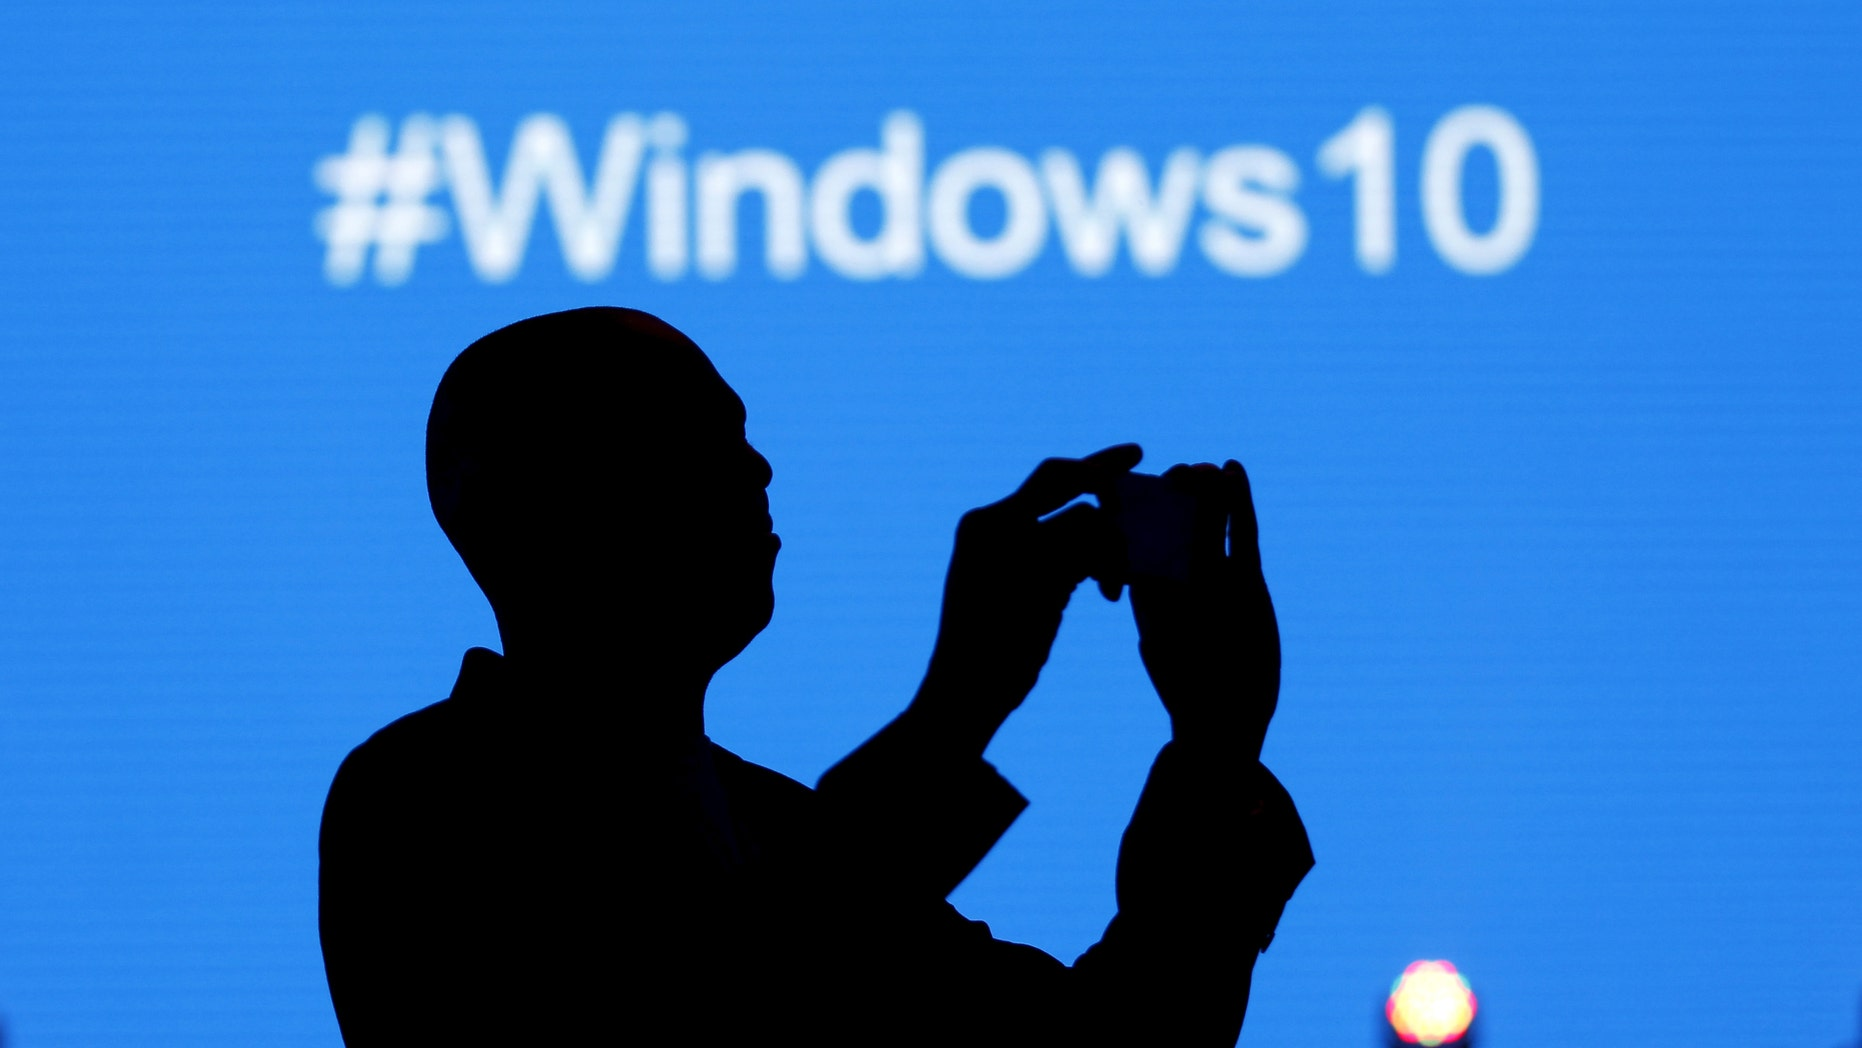 File print - A Microsoft nominee takes a design during a launch of a Windows 10 handling complement in Kenya's collateral Nairobi, Jul 29, 2015.